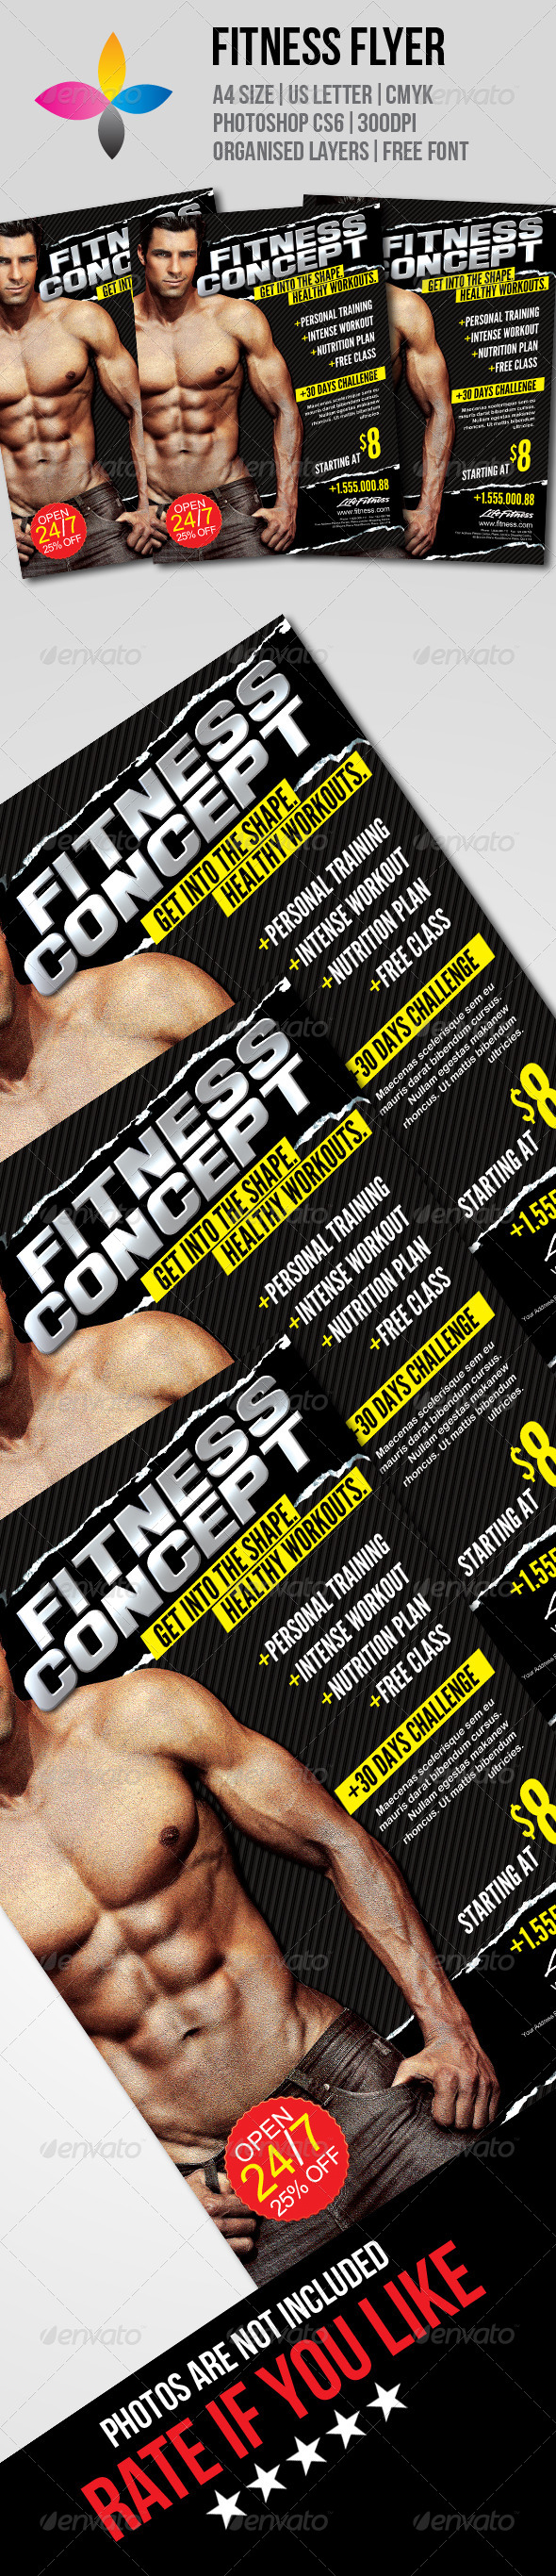 GraphicRiver Fitness Flyer 7755345